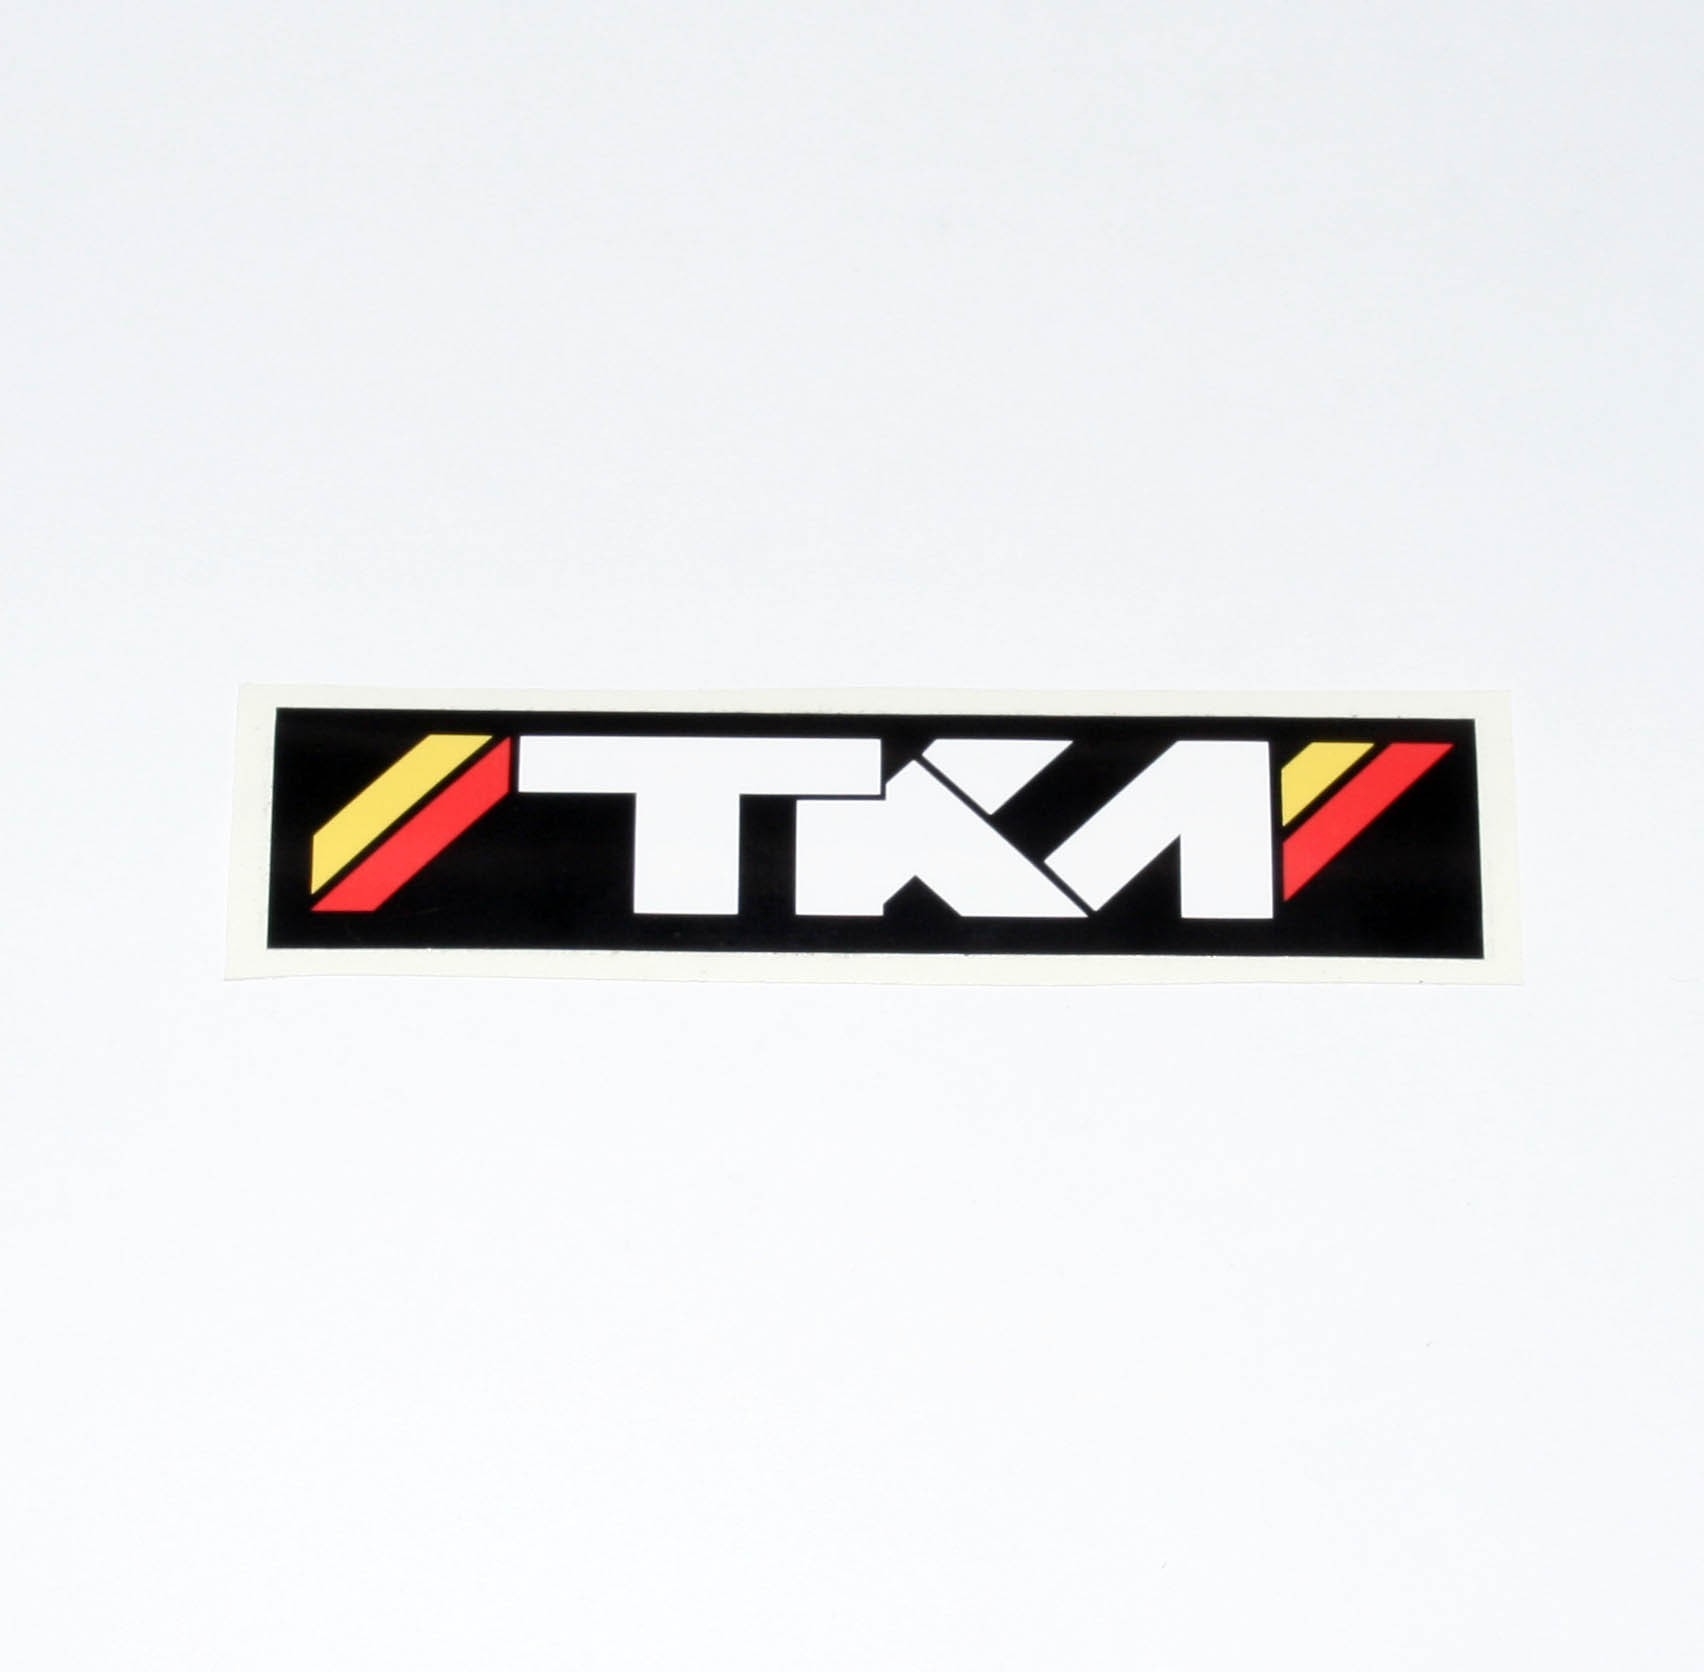 TKM STICKER DECAL 148 x 32